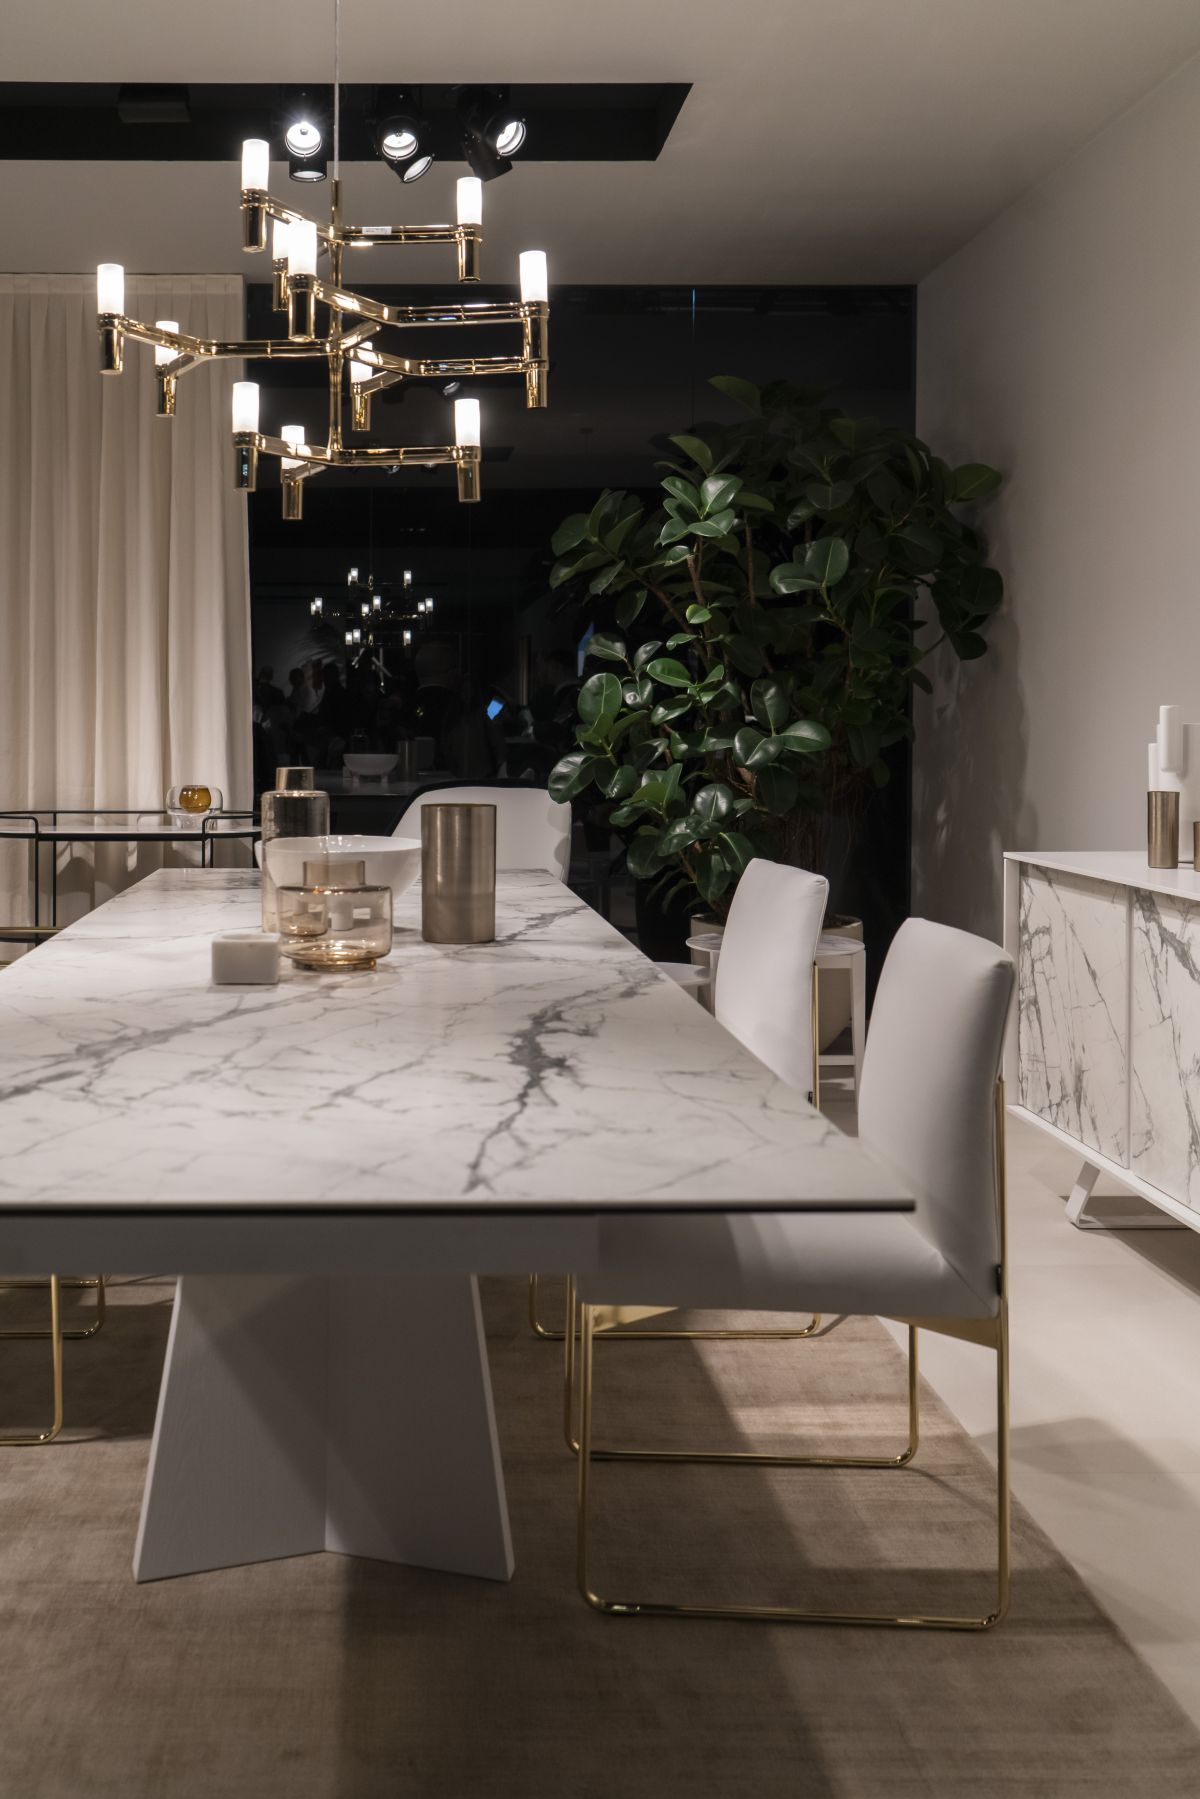 dining table with large marble slab - How To Design And Decorate The Space Around Your Dining Table